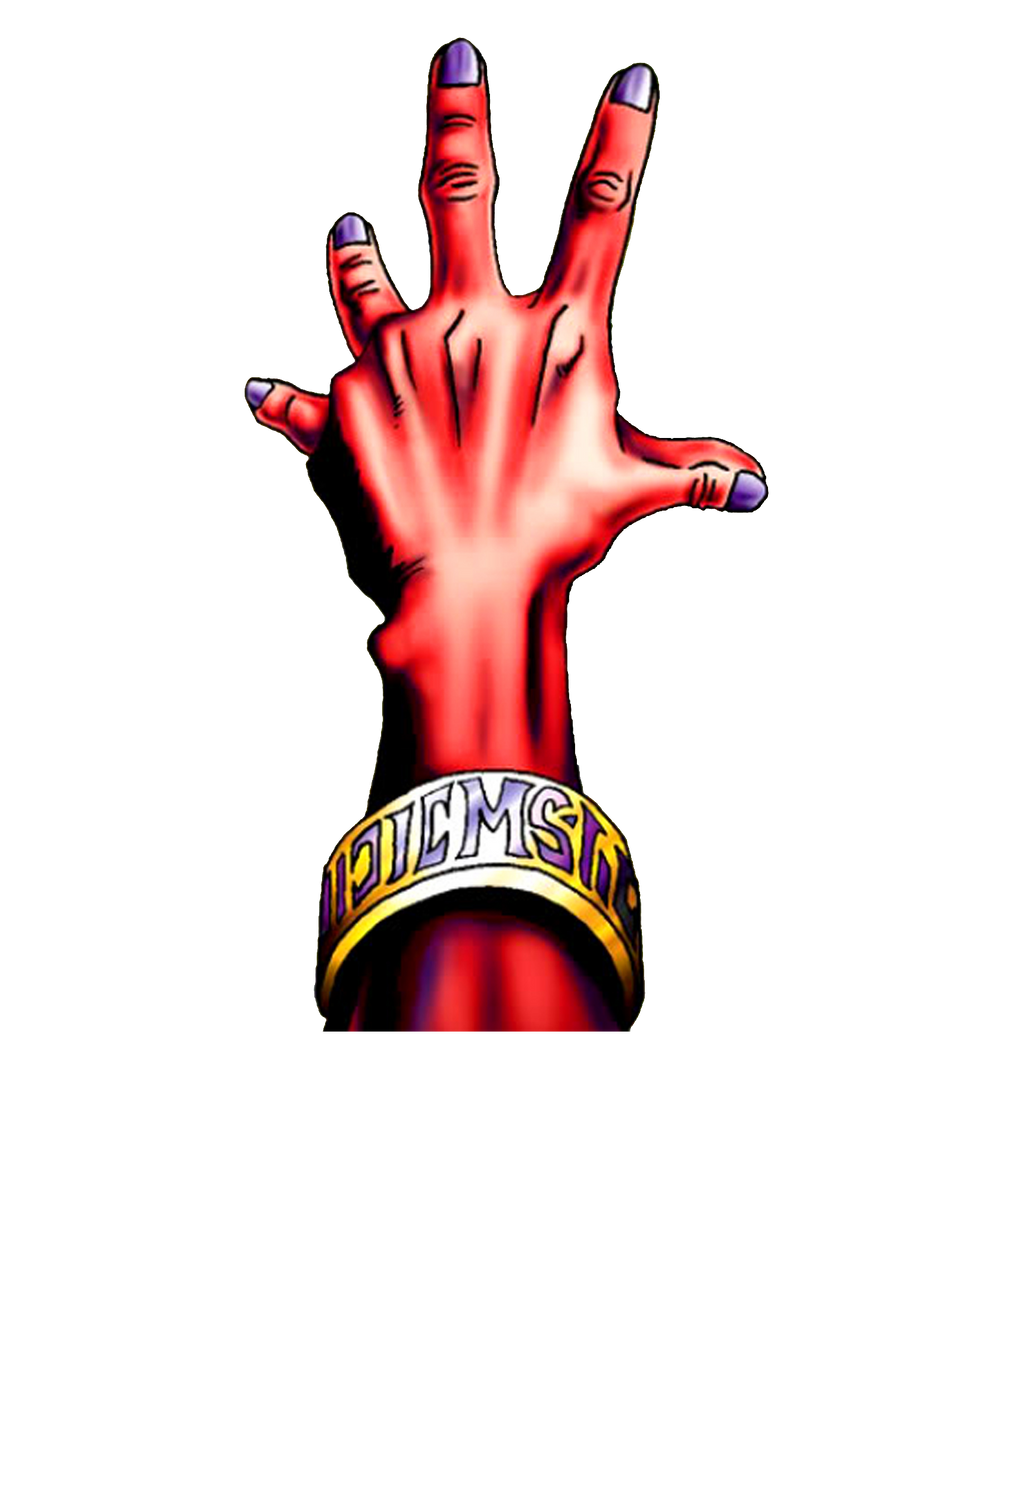 The Judgement Hand png by Carlos123321